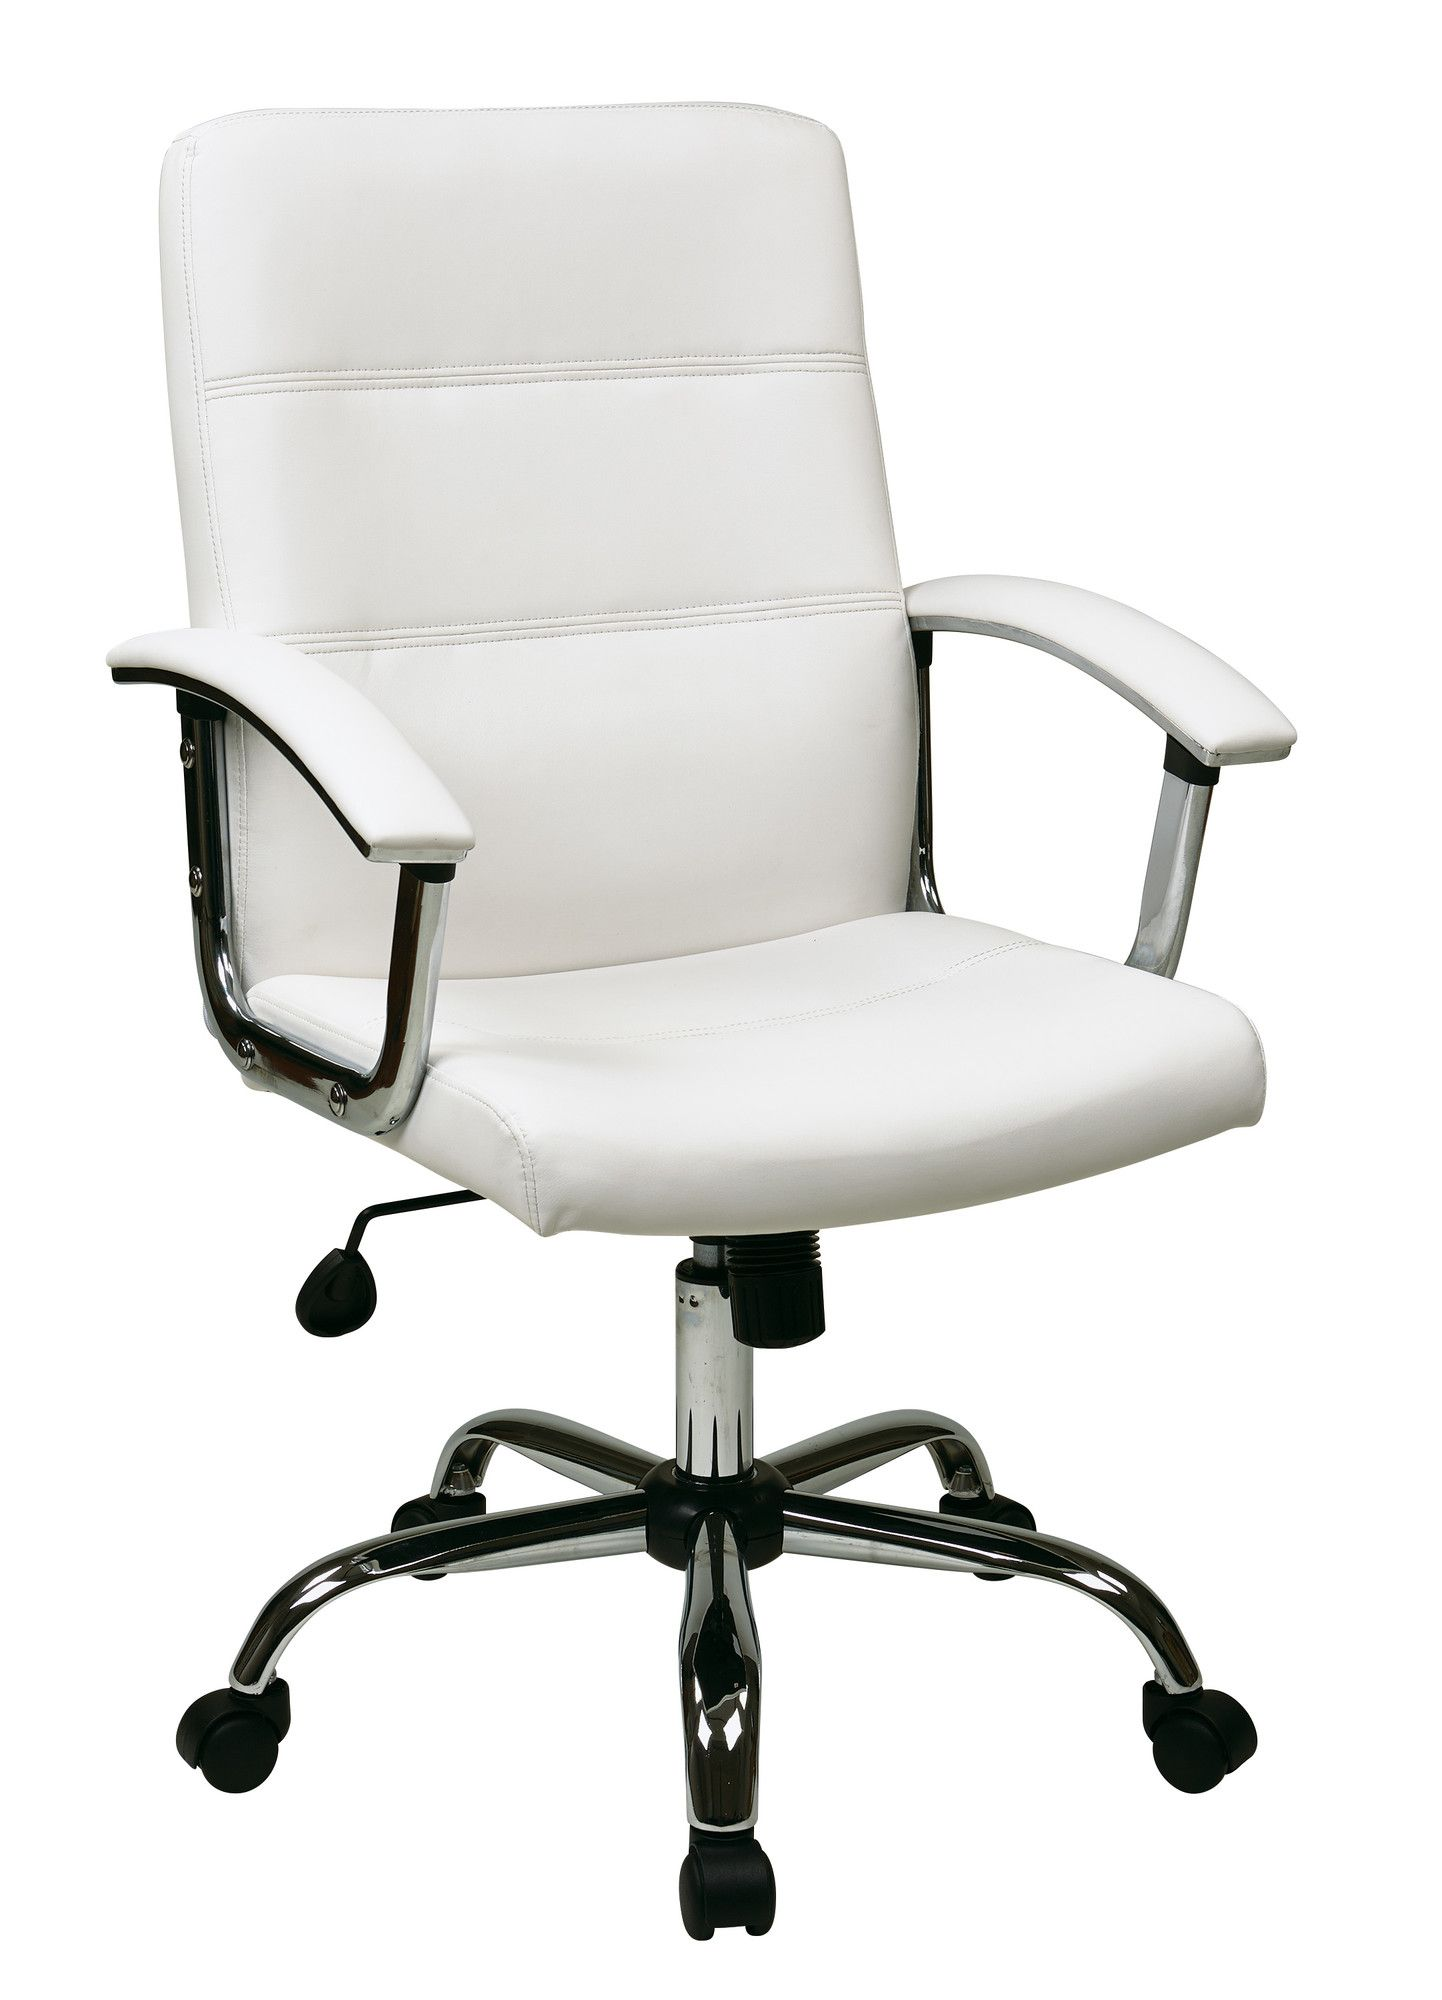 Osp Designs Malta Office Chair Reviews Wayfair Supply With